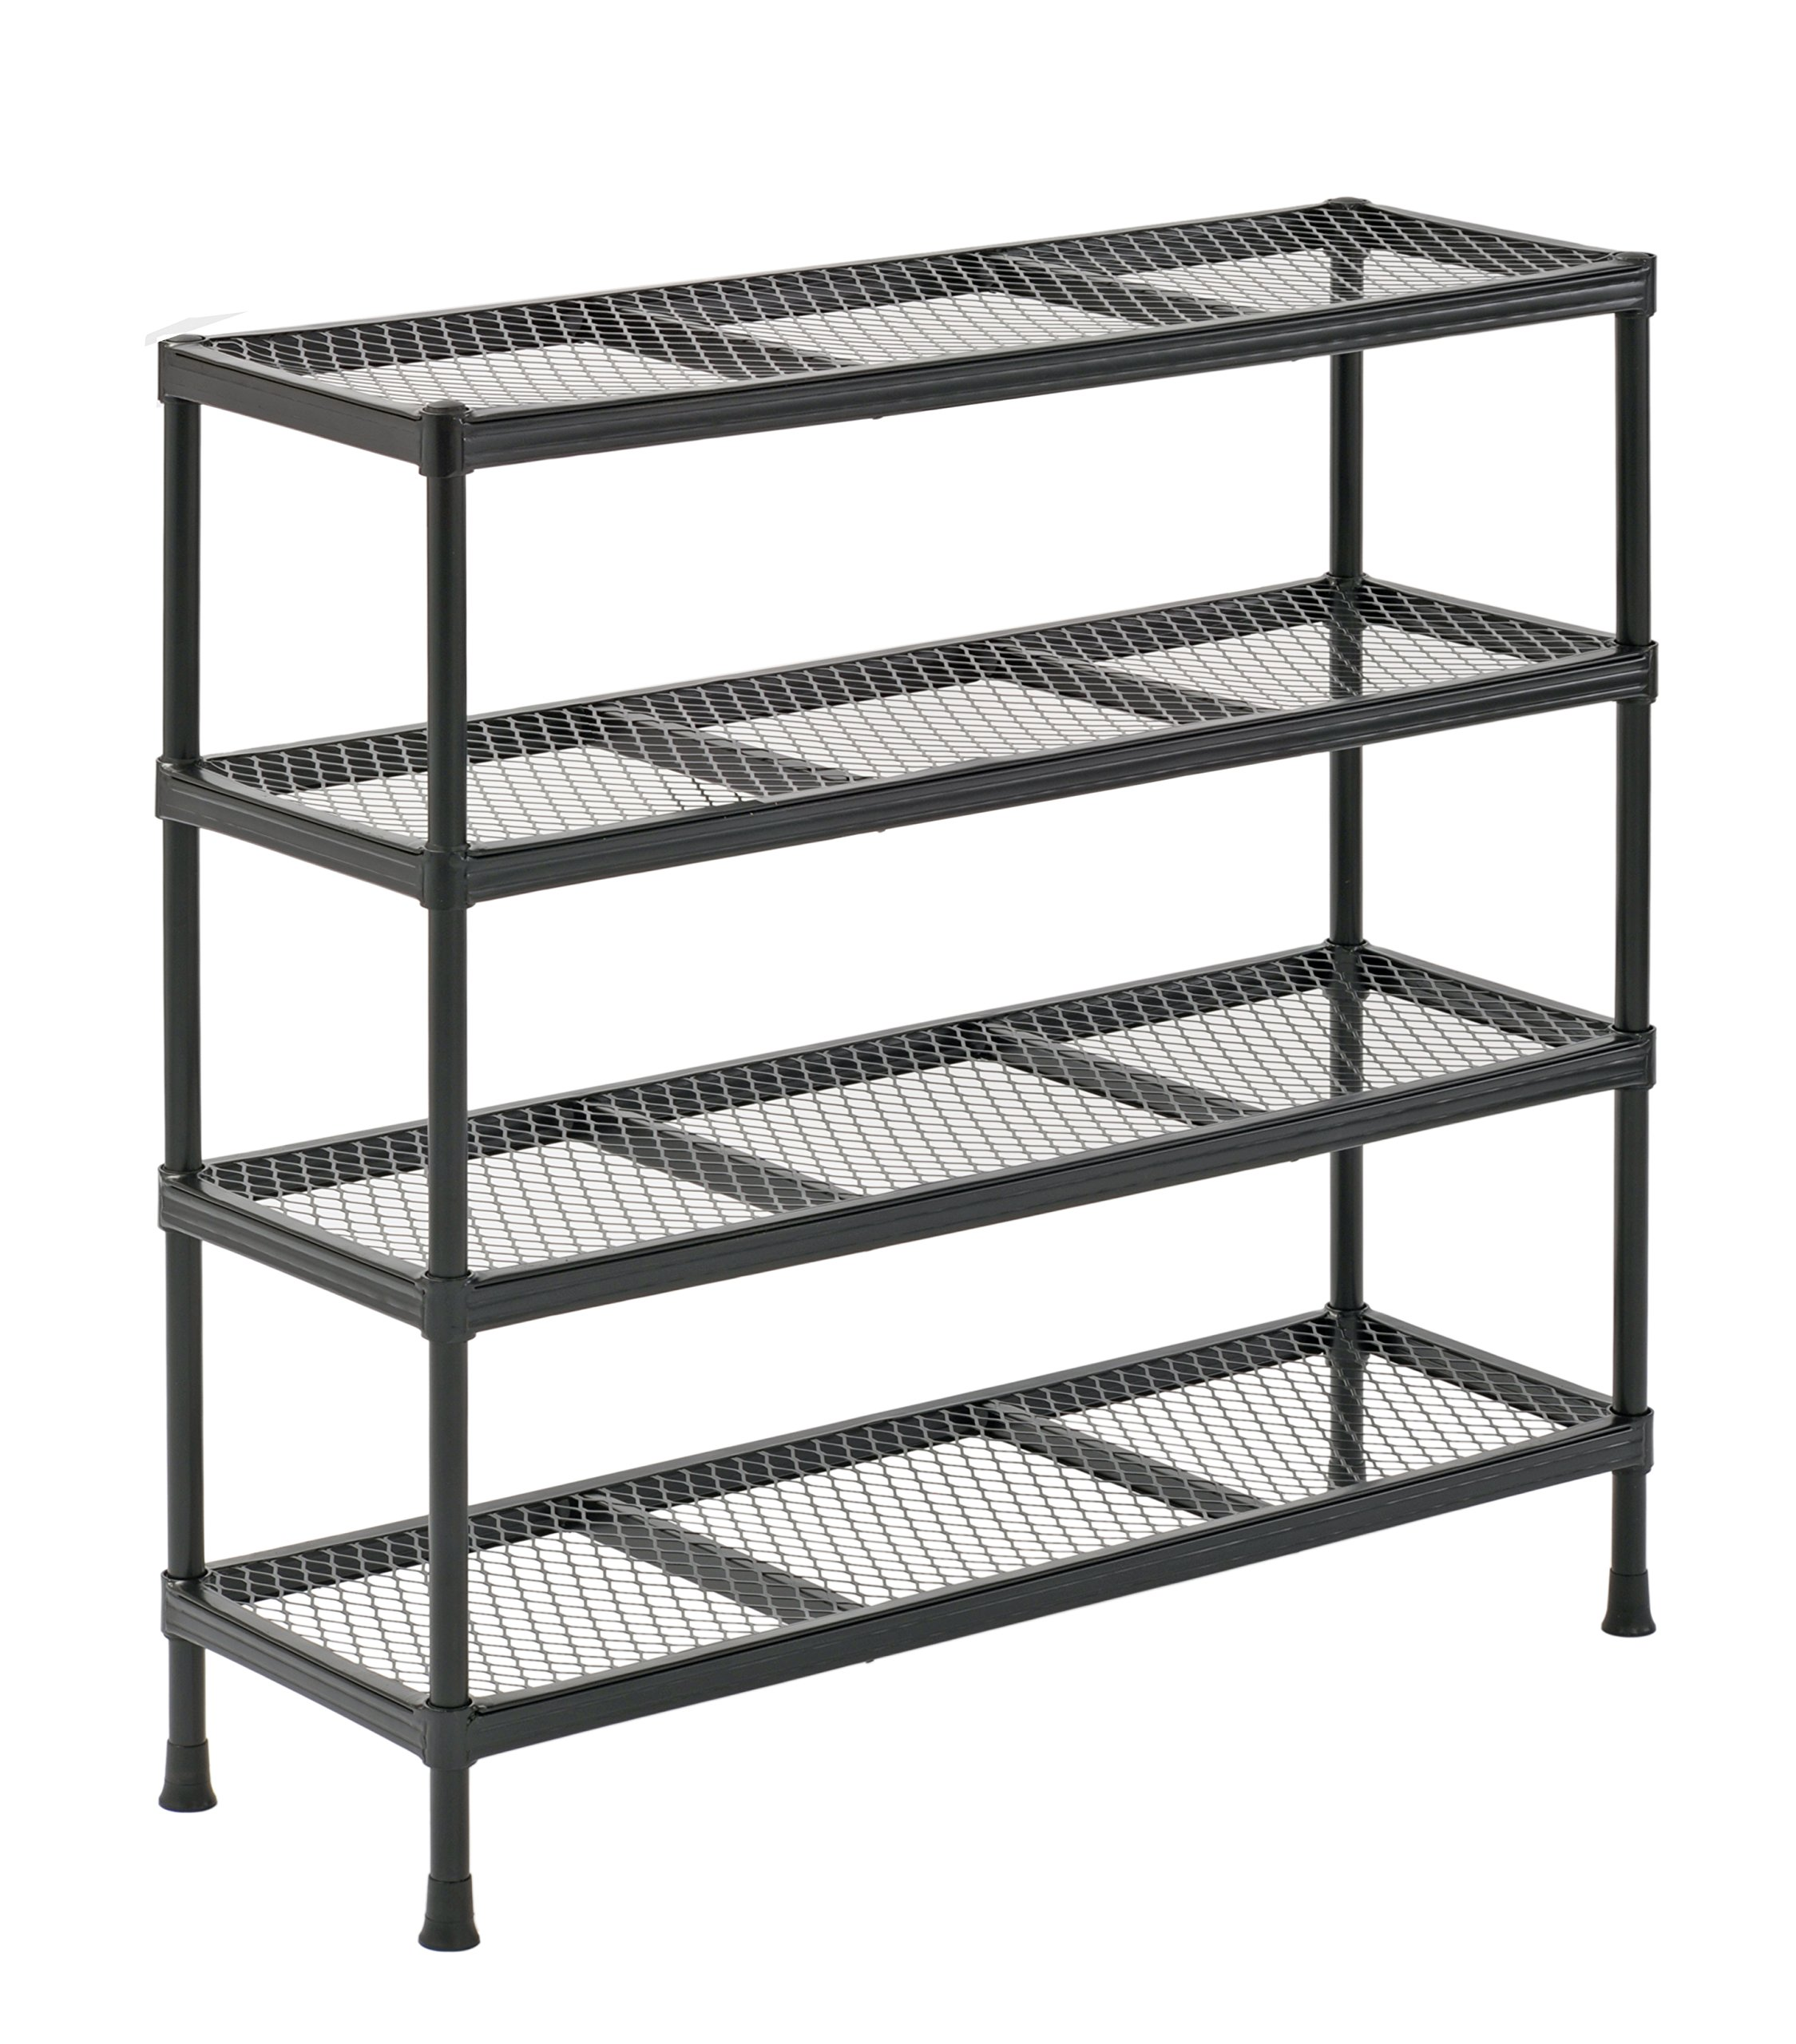 Kitchen Shelf Metal: 4 Tier Metal Shelving Shelf Rack Garage Office Kitchen